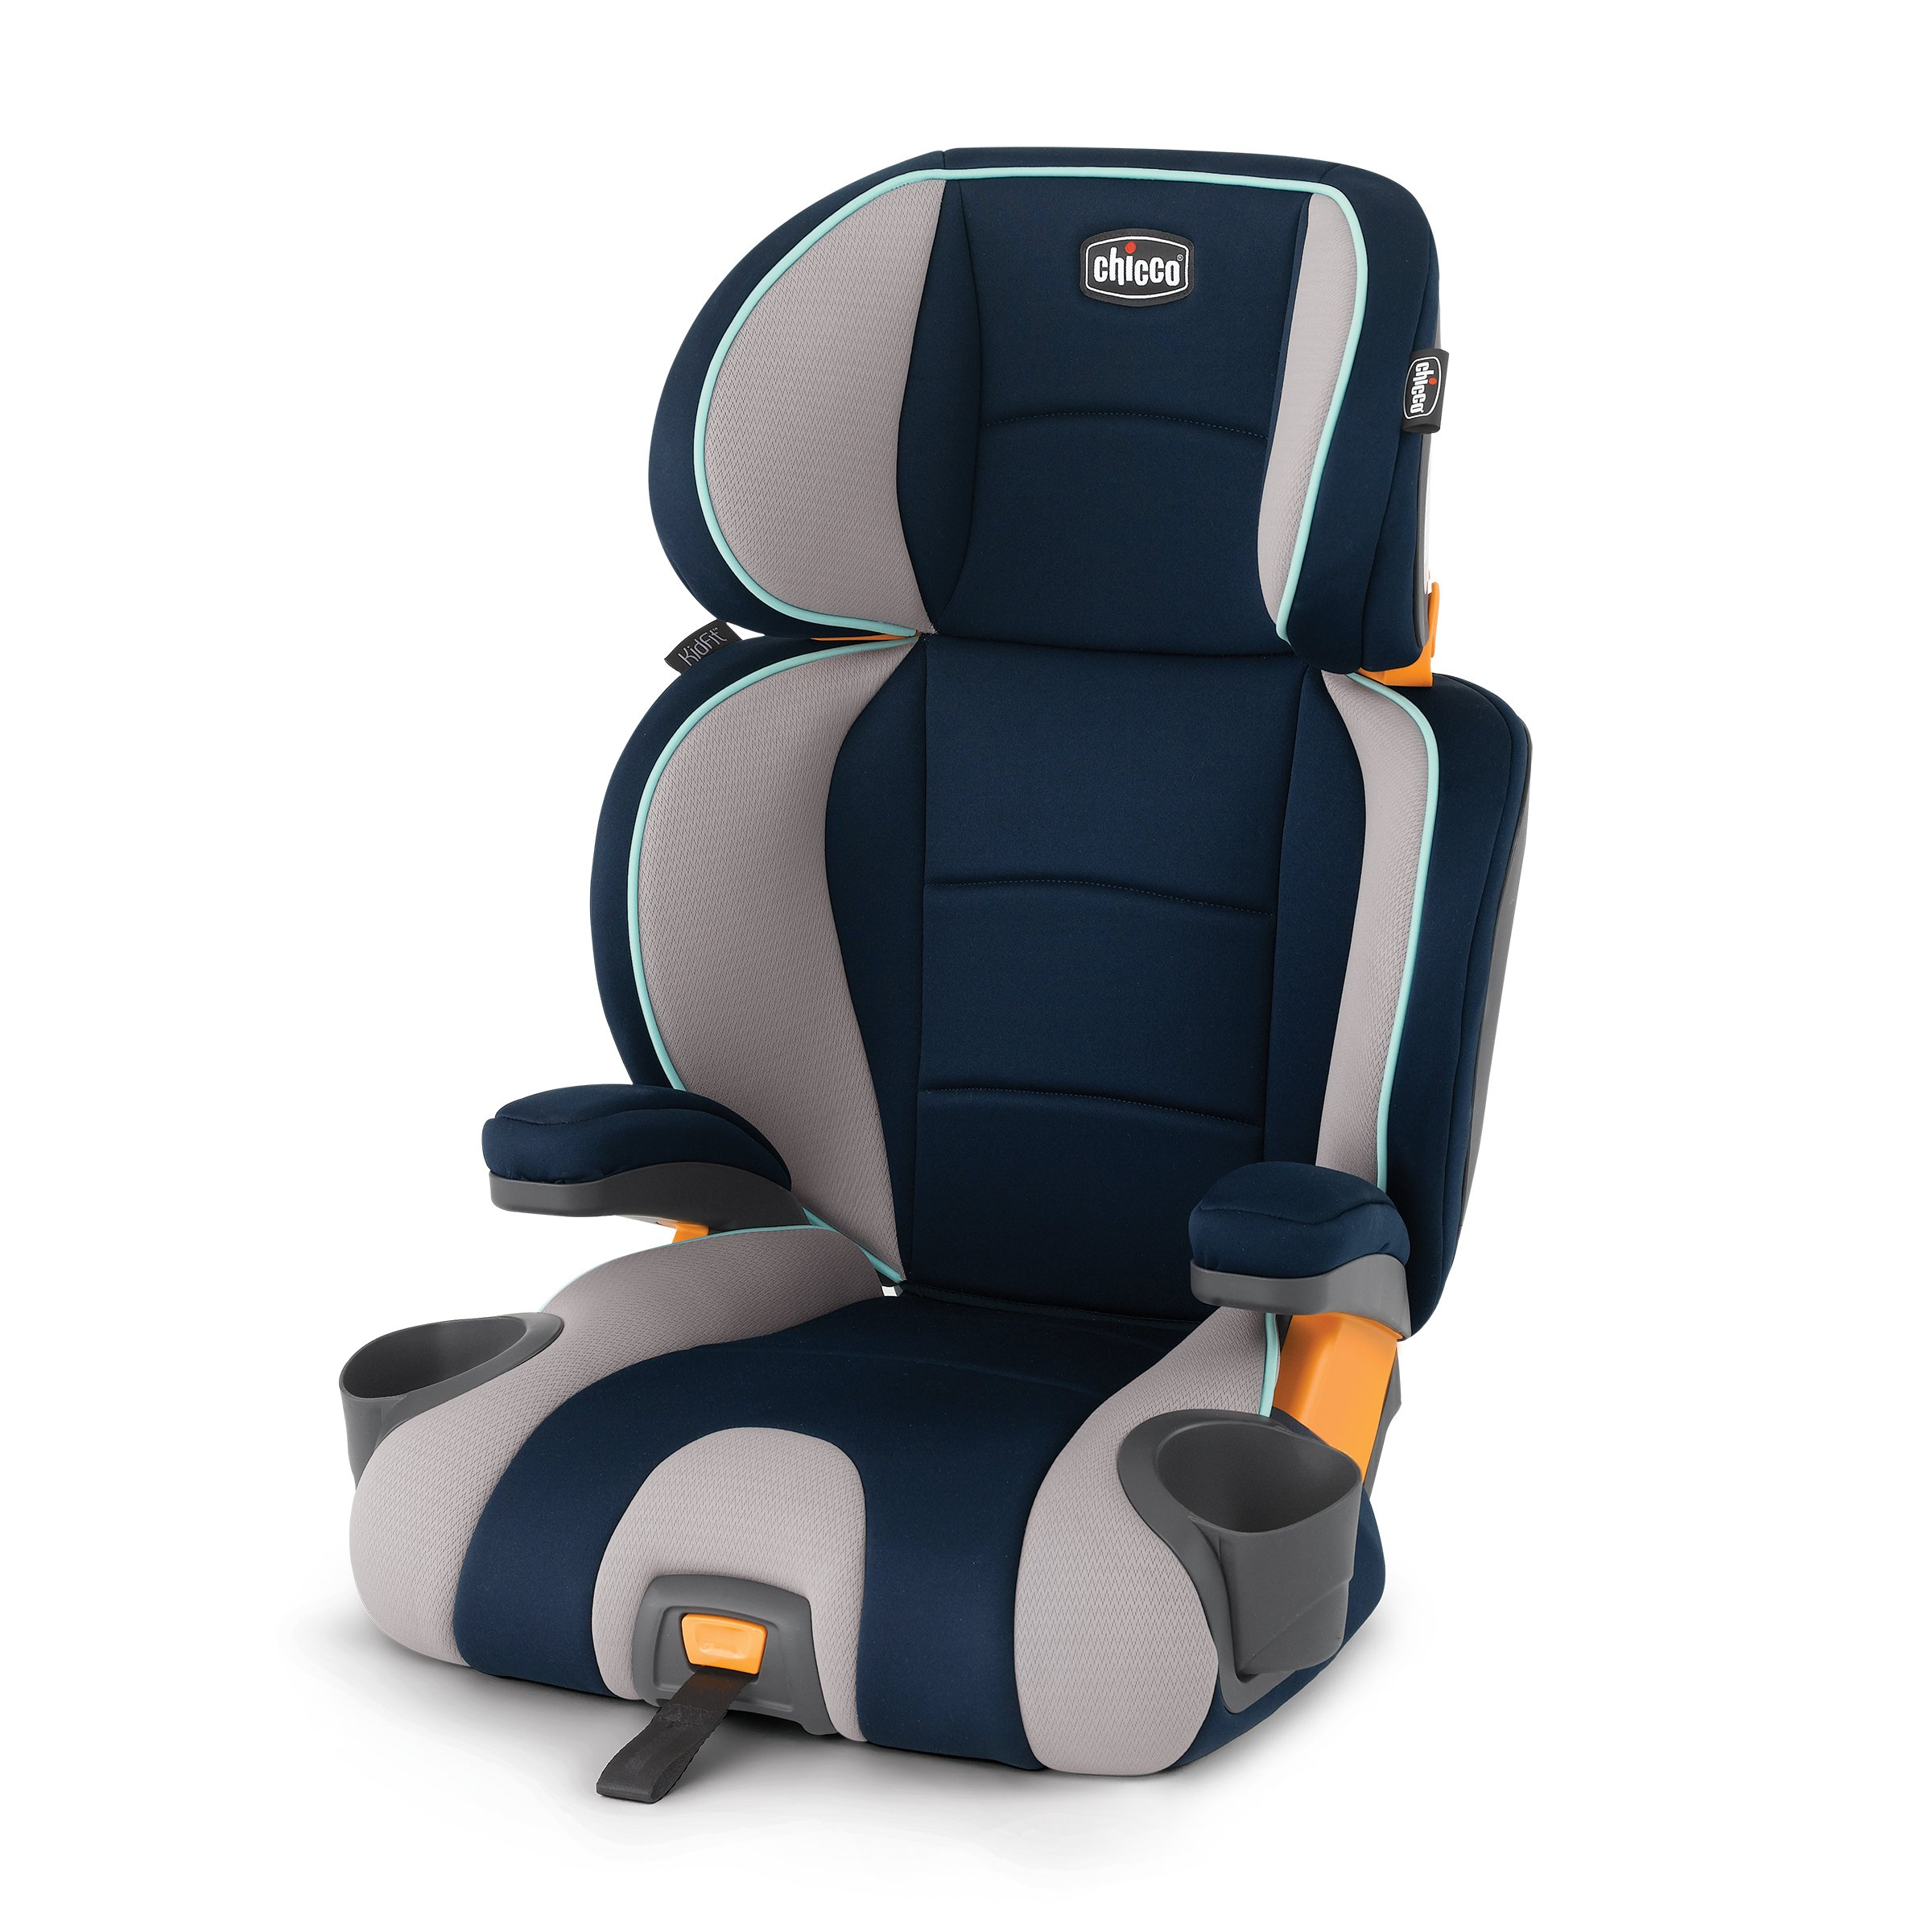 Amazon.com : Chicco KidFit 2-in-1 Belt-Positioning Booster Car Seat ...